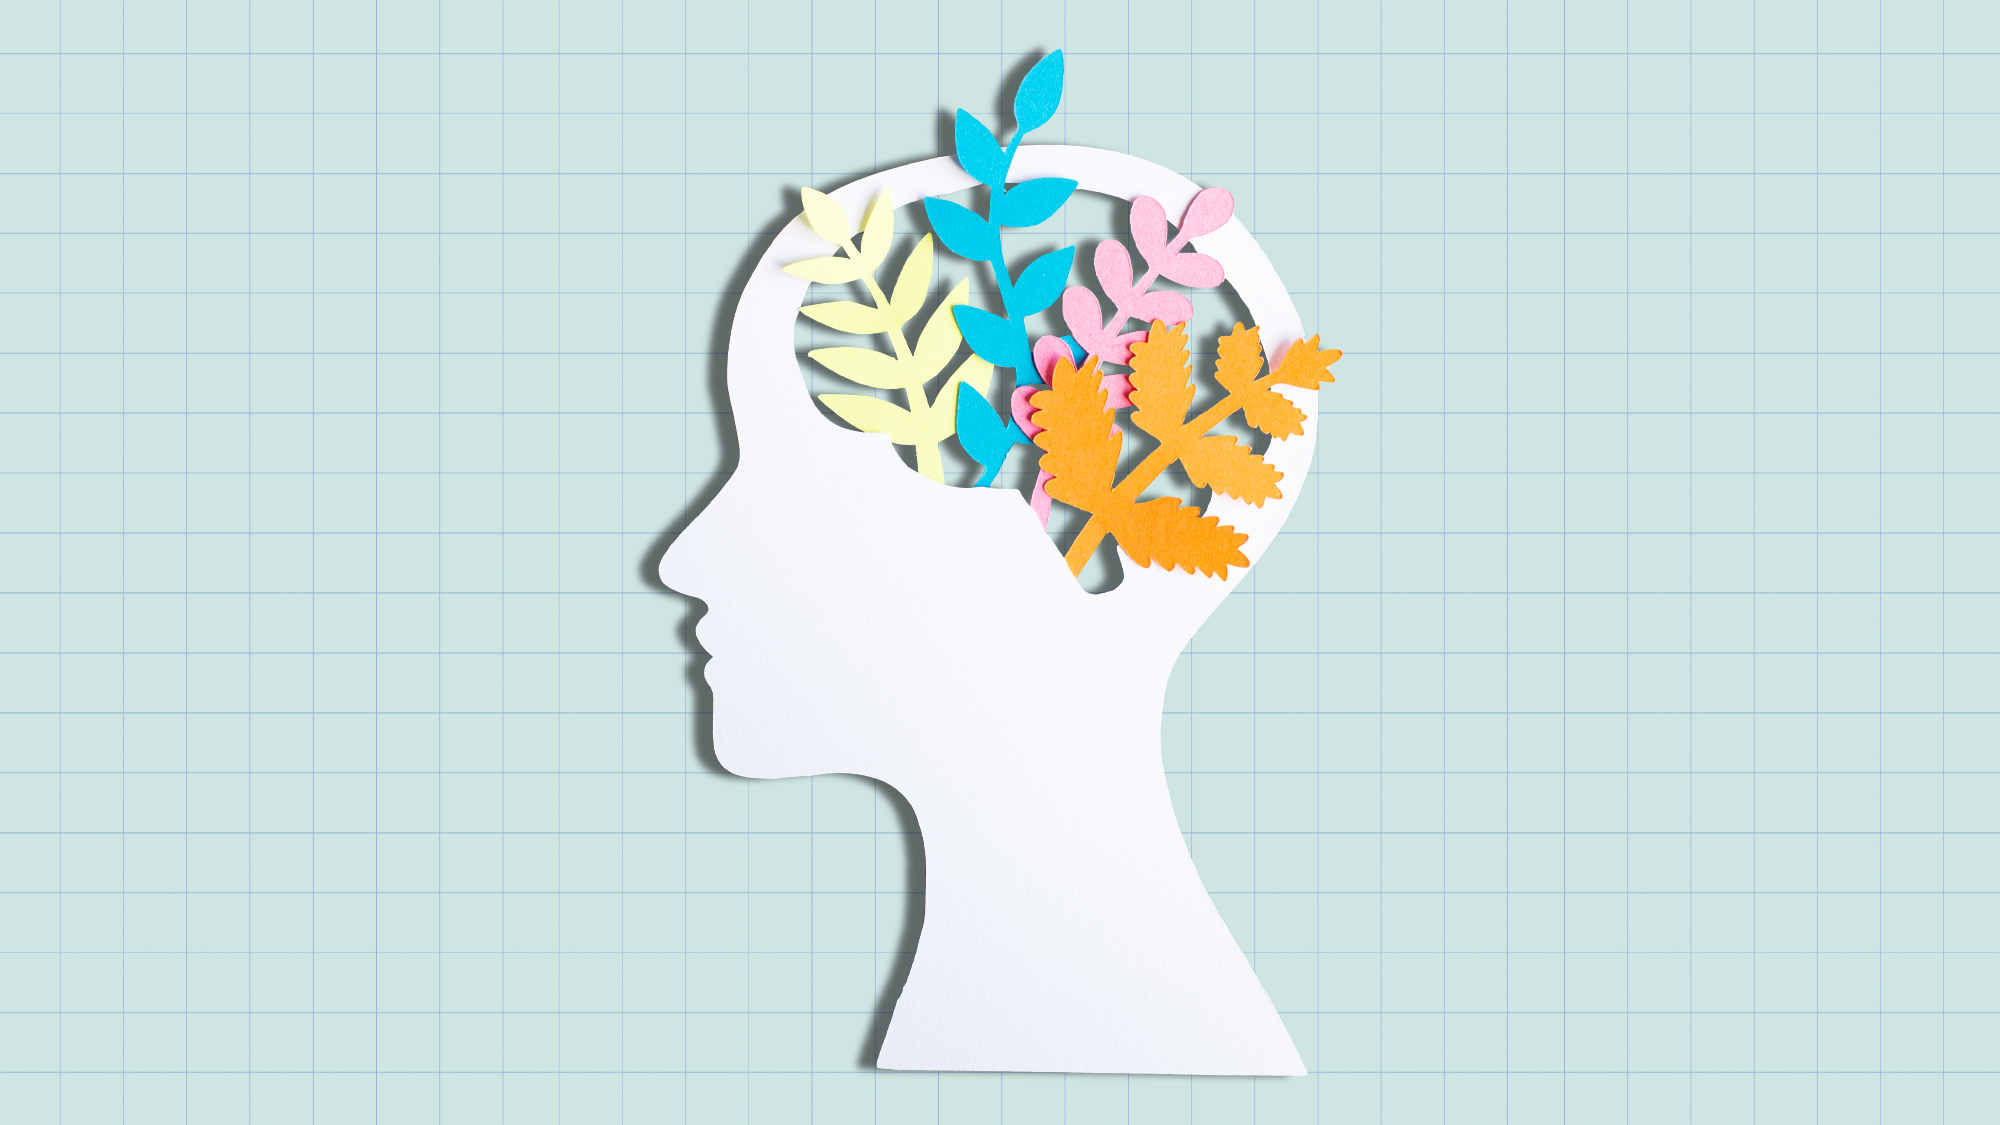 Cut out of head with plants growing on a designed background